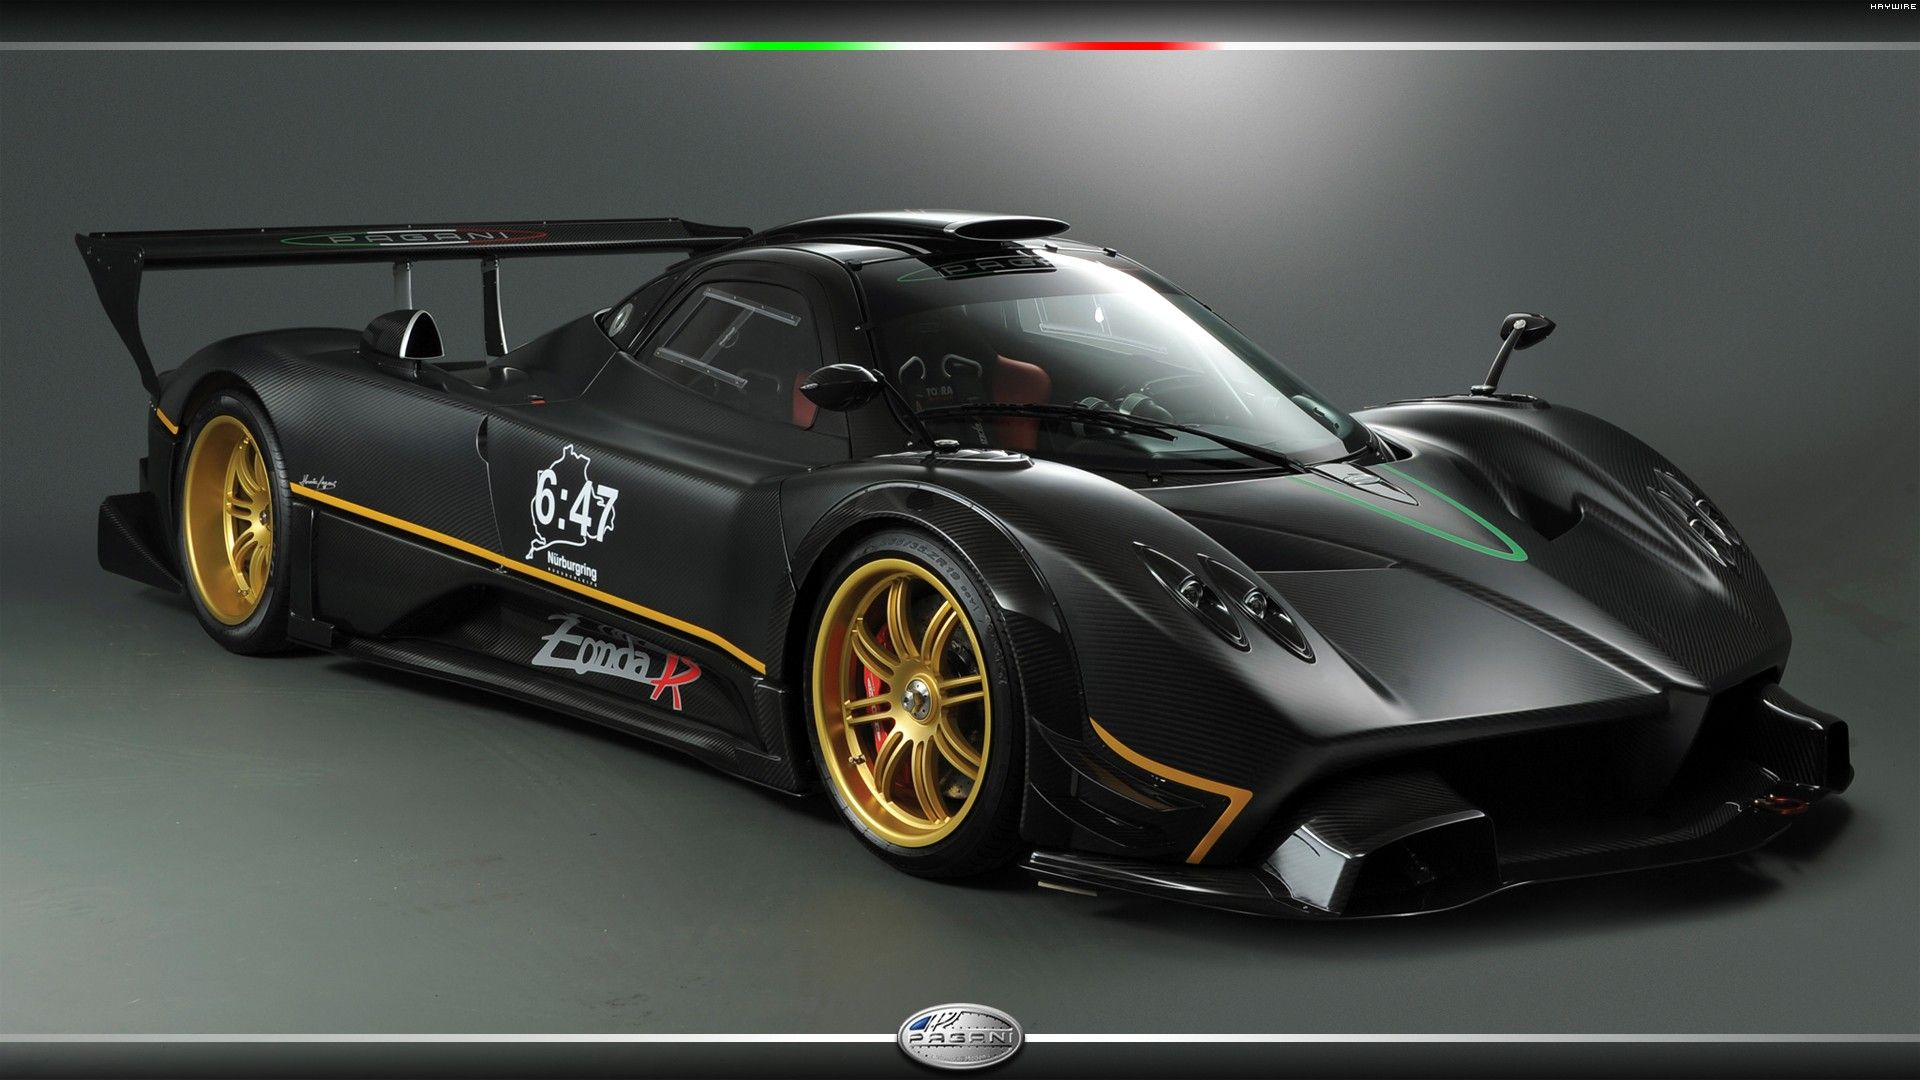 Pagani Car Wallpaper High Quality Wallpaper